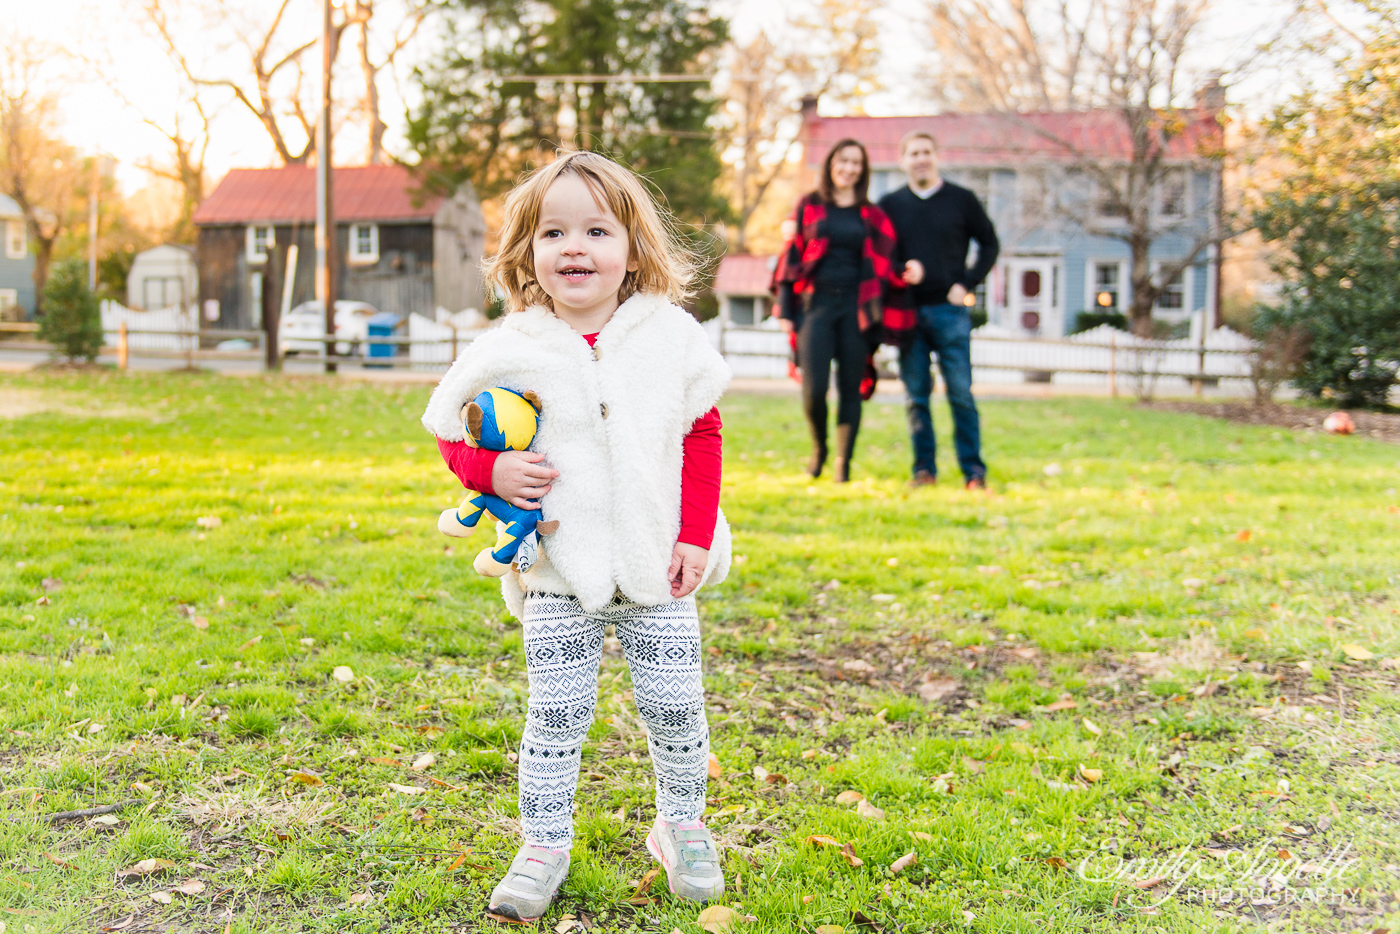 A young girl smiling for the camera in front of her parents for family photos at Clifton Town Park in Fairfax County, Virginia